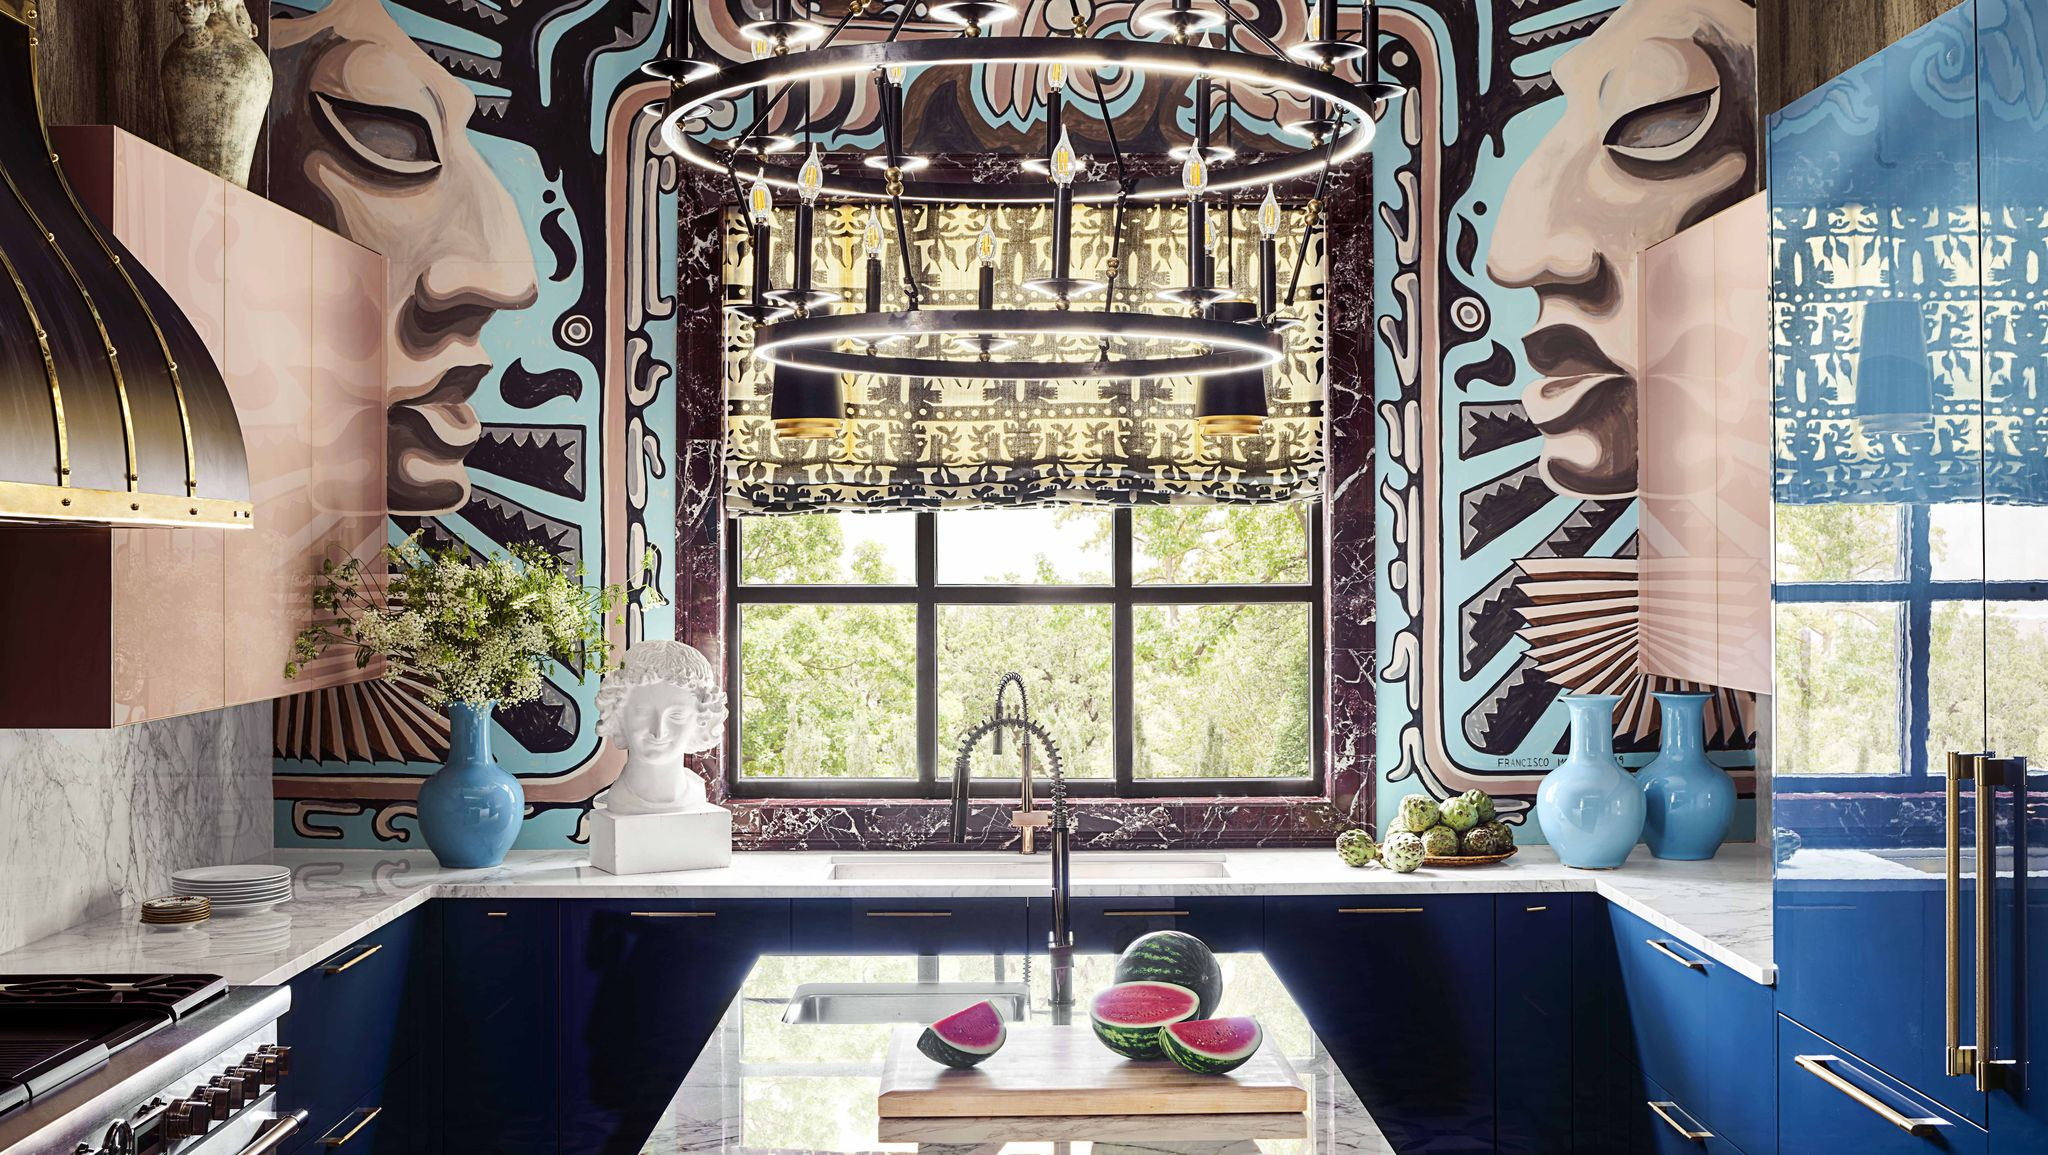 Introducing Our 2019 Kitchen(s) of the Year by Michelle Nussbaumer